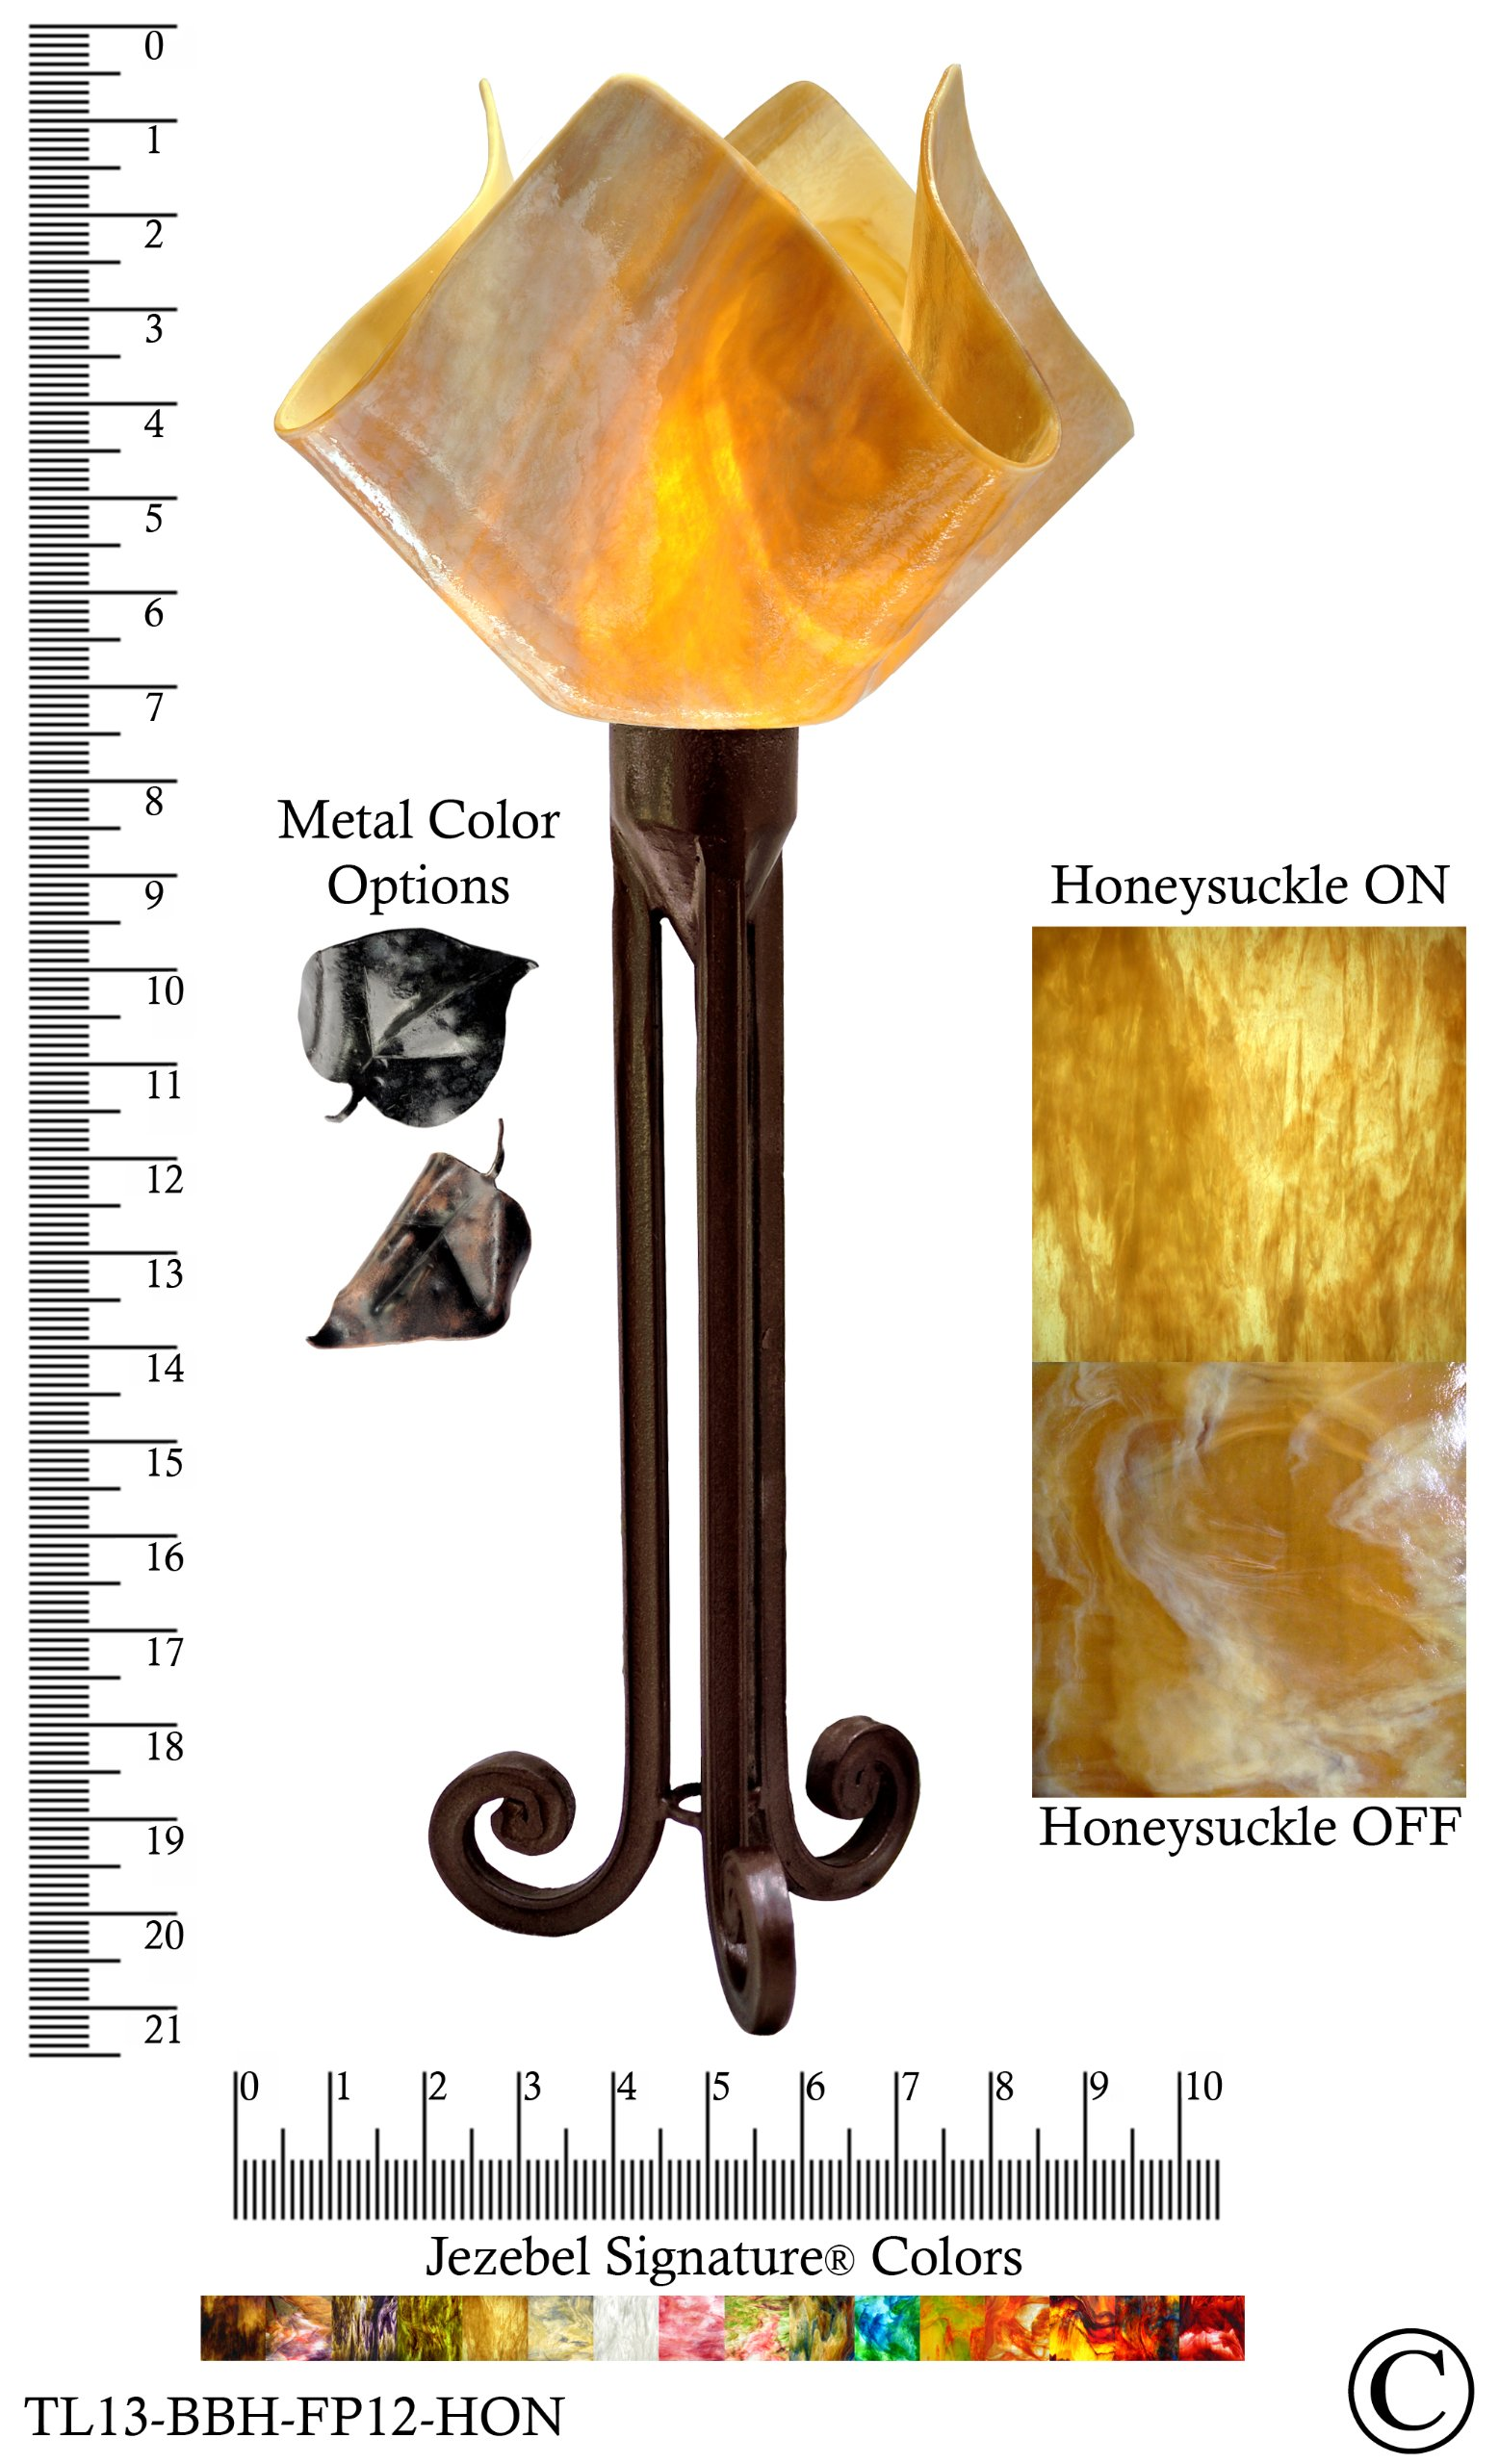 Jezebel Signature® Torch Light. Hardware: Brown with Brown Highlights. Glass: Honeysuckle, Flame Style